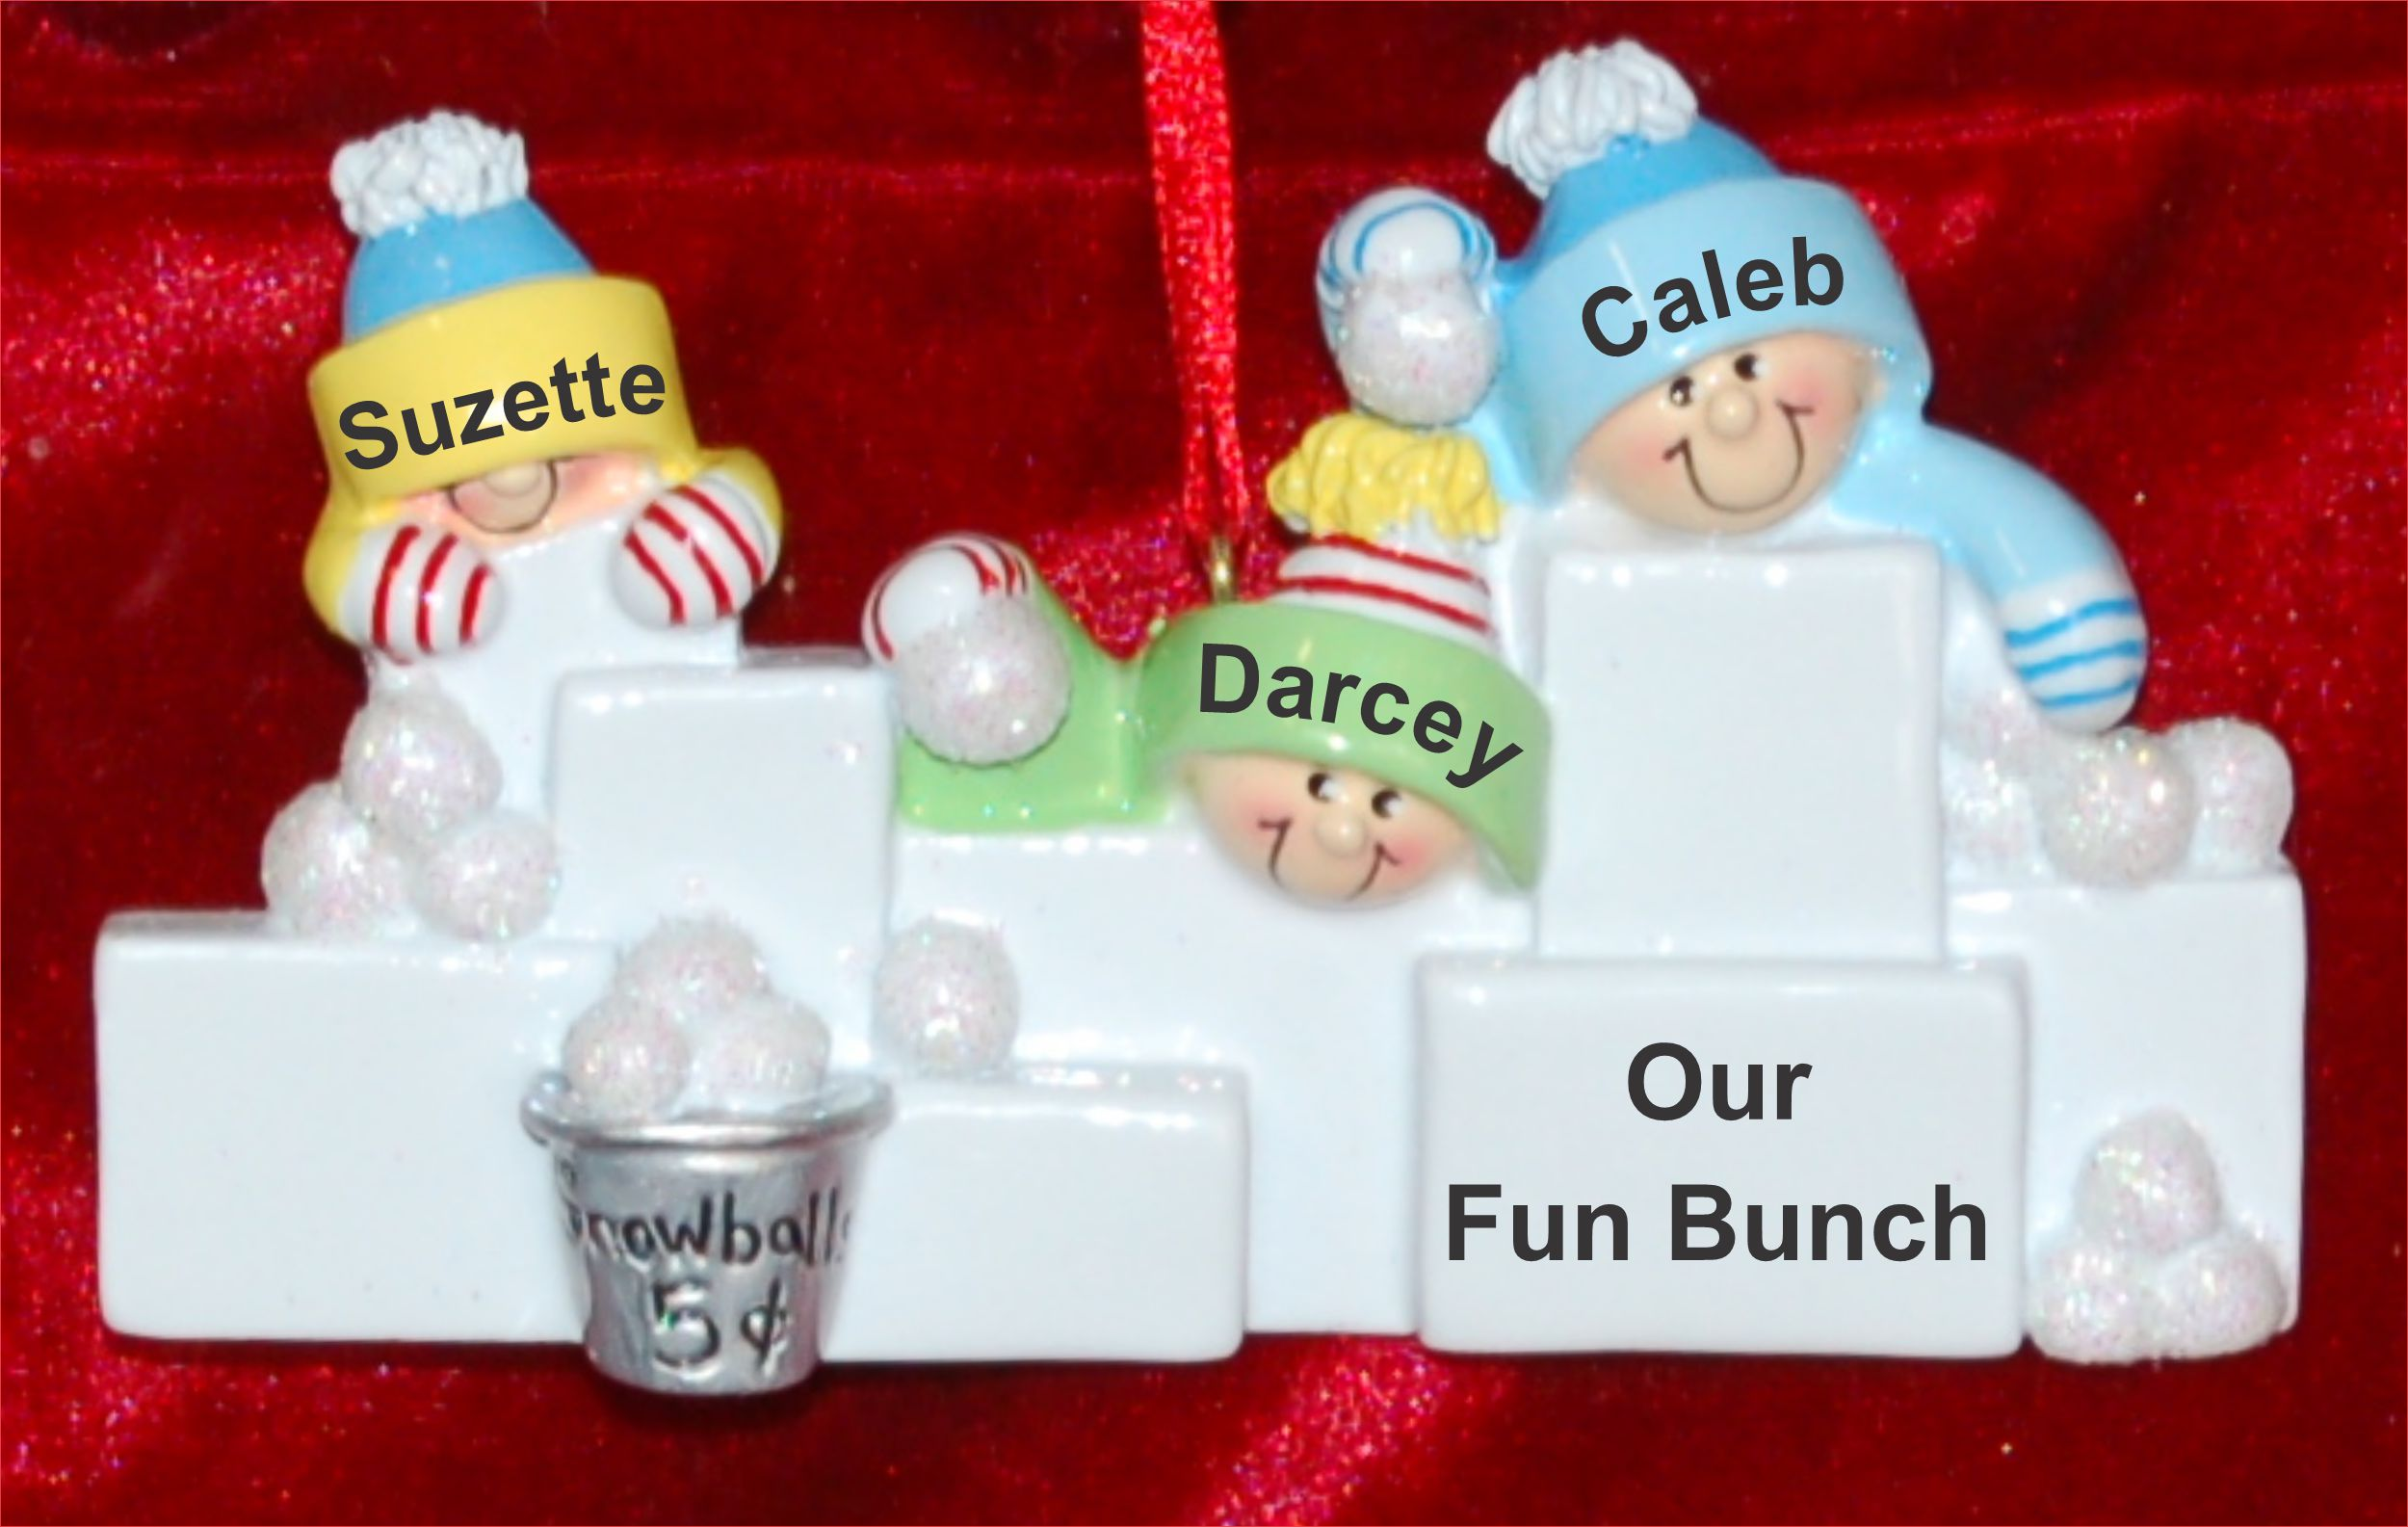 Personalized Family Christmas Ornament Snowball Fun Just the 3 Kids Personalized by Russell Rhodes